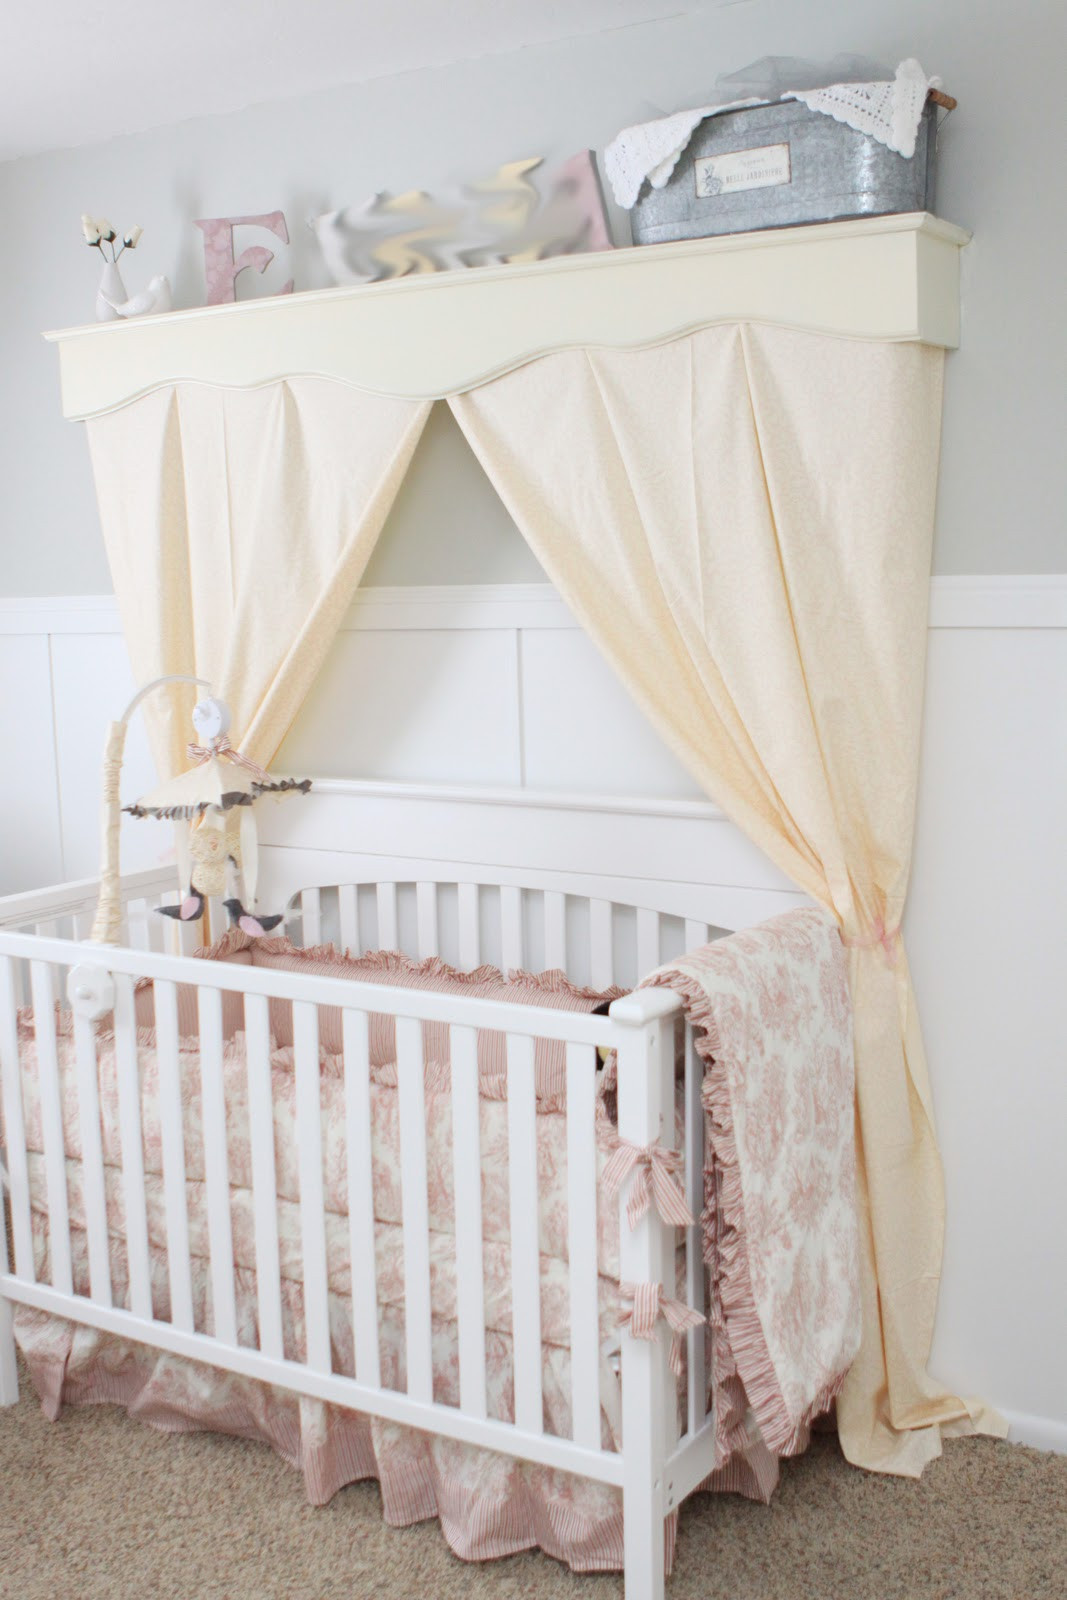 Best ideas about DIY Baby Nursery . Save or Pin Home Sweet Home Baby Nursery Charming DIY Decor Now.